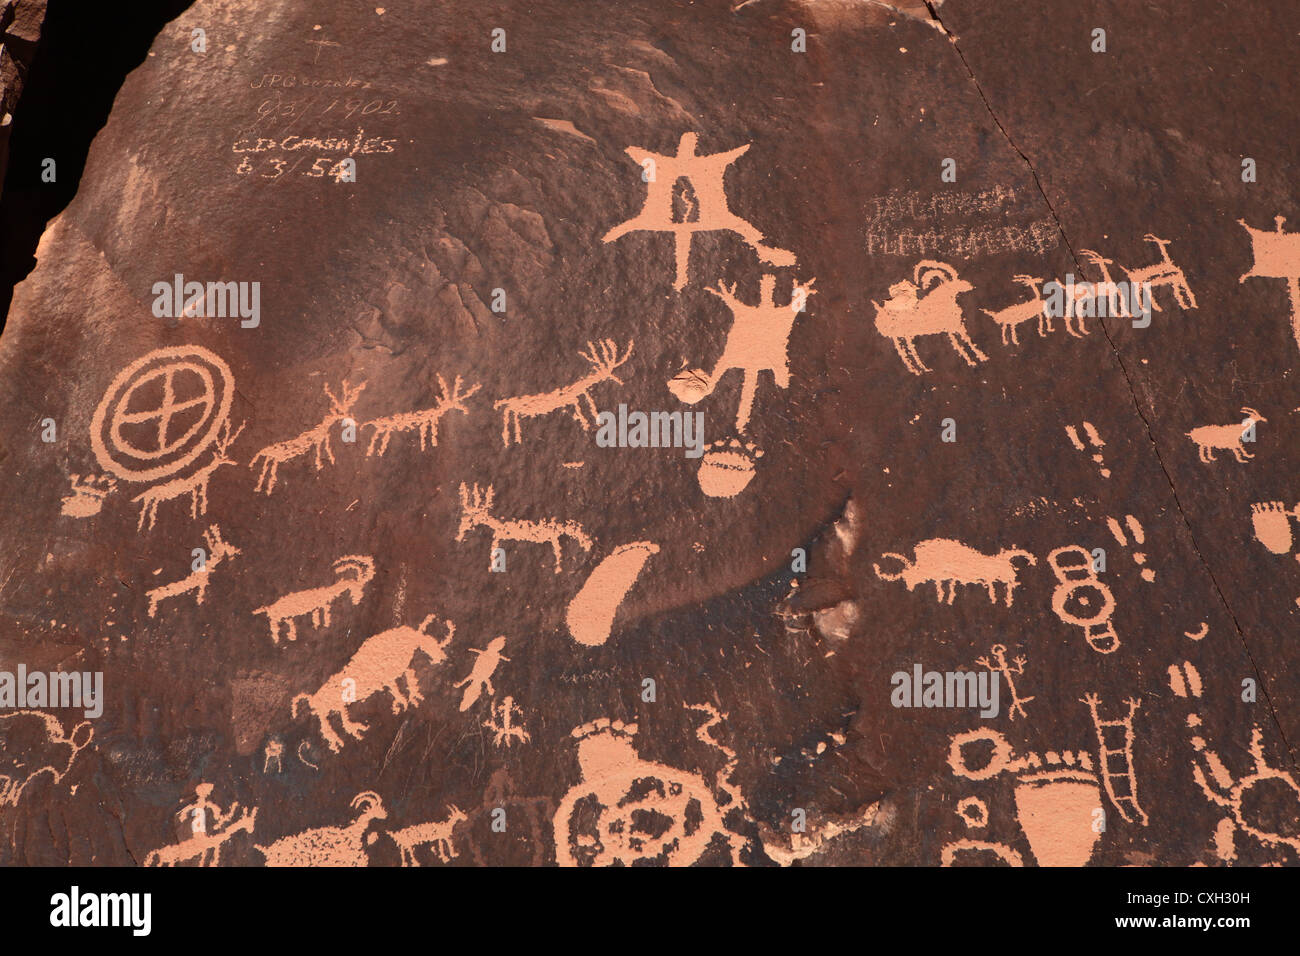 Ancient Indian petroglyph on rock in Moab, Utah, USA - Stock Image